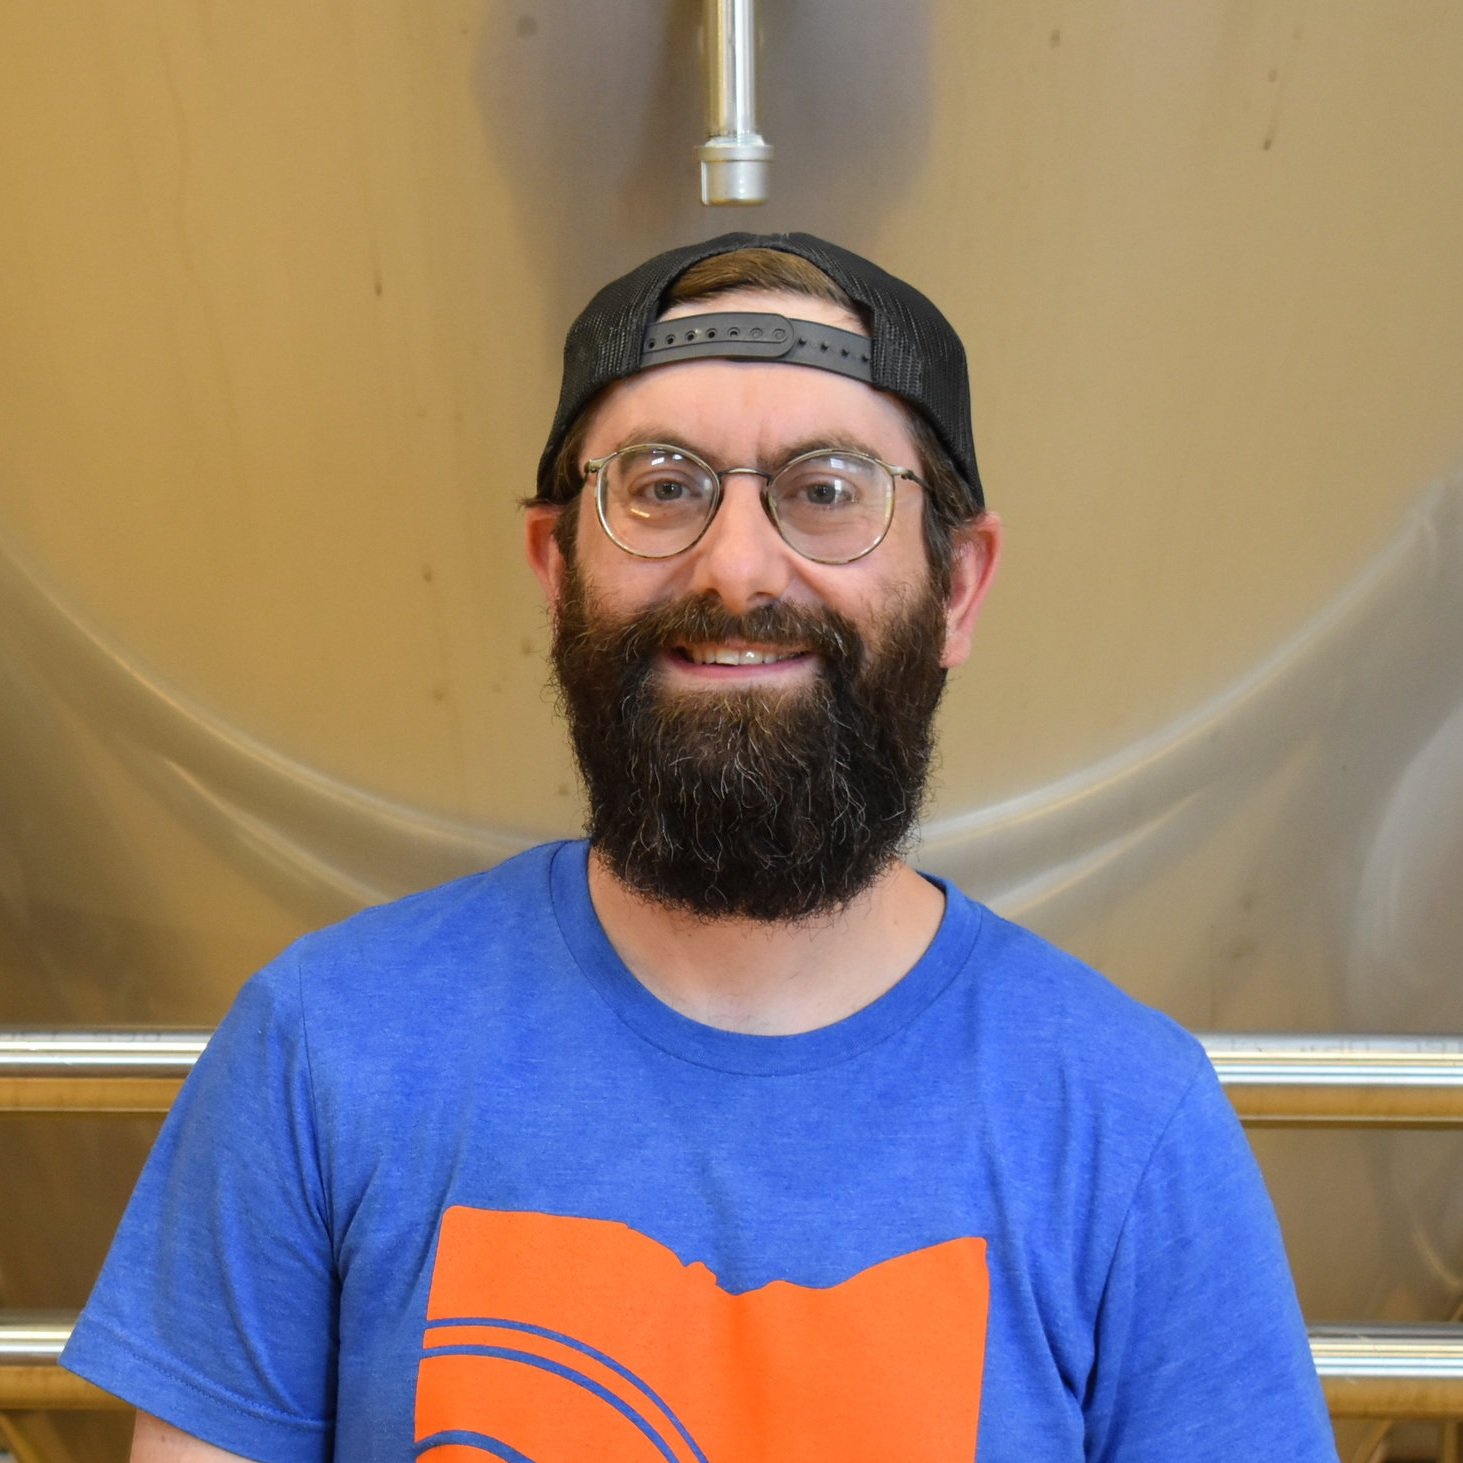 John - Maintenance Manager   John considers craft beer as a hobby, and spends a lot of his time visiting breweries and trying new beers with friends. He's also a big racing fan who will travel to race tracks to drive practice runs, and he one day hopes to take a road trip down Route 60, hopefully going the speed limit. John loves keeping Sonder clean and looking nice for everyone to enjoy. He likes a lot of different styles, but when it comes down to it he loves a really good lager and his favorite Sonder beer is Rally Cap